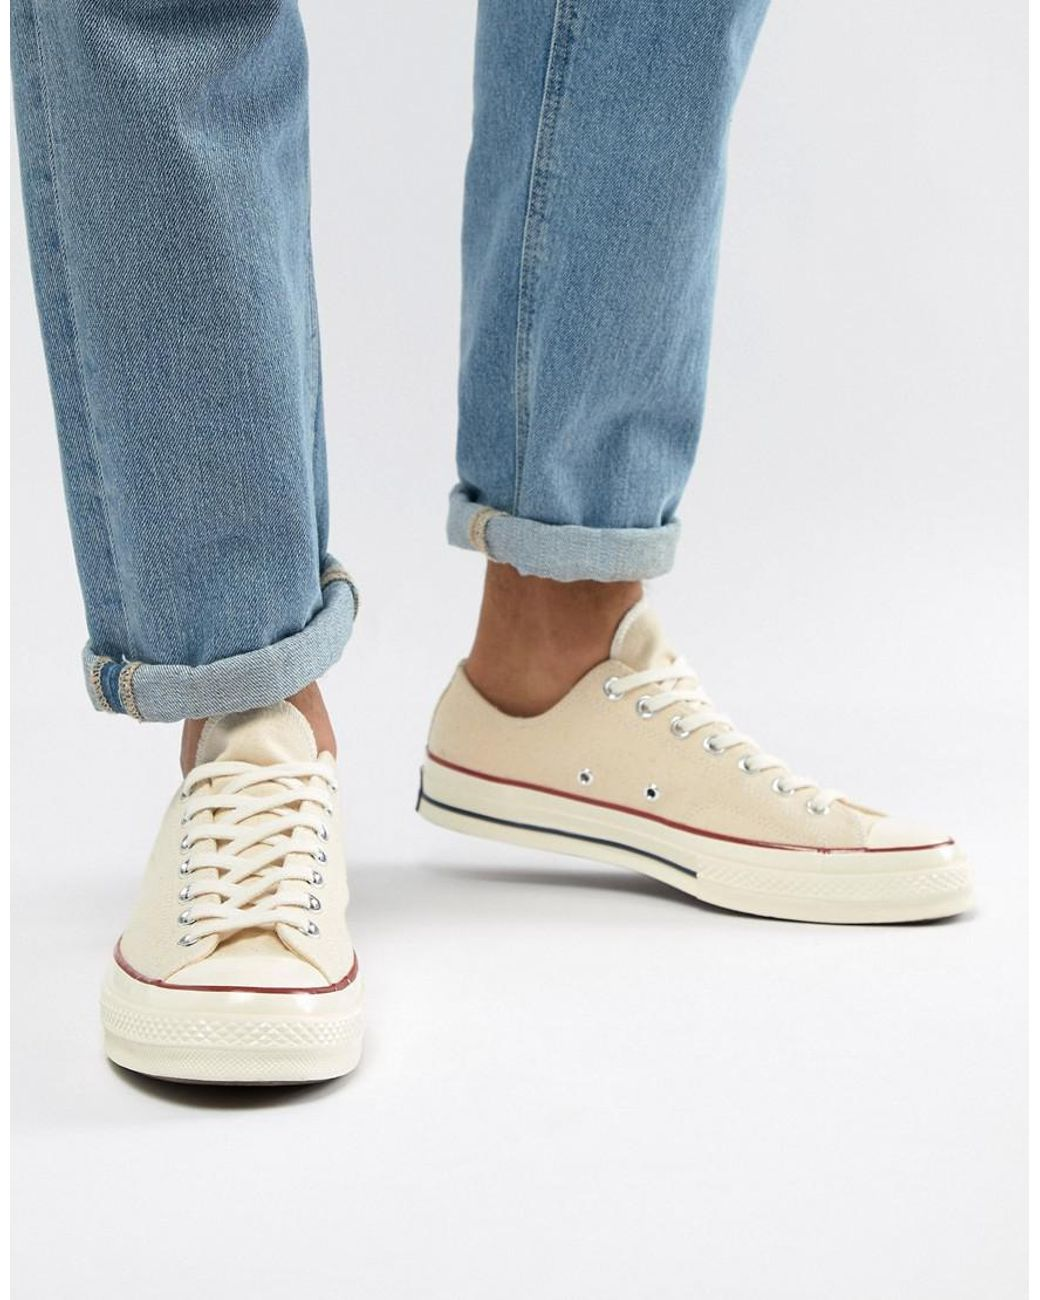 ab367755f823 Long-Touch to Zoom. Long-Touch to Zoom. 1  2. Converse - White Chuck Taylor  All Star  70 Ox Trainers In Parchment ...